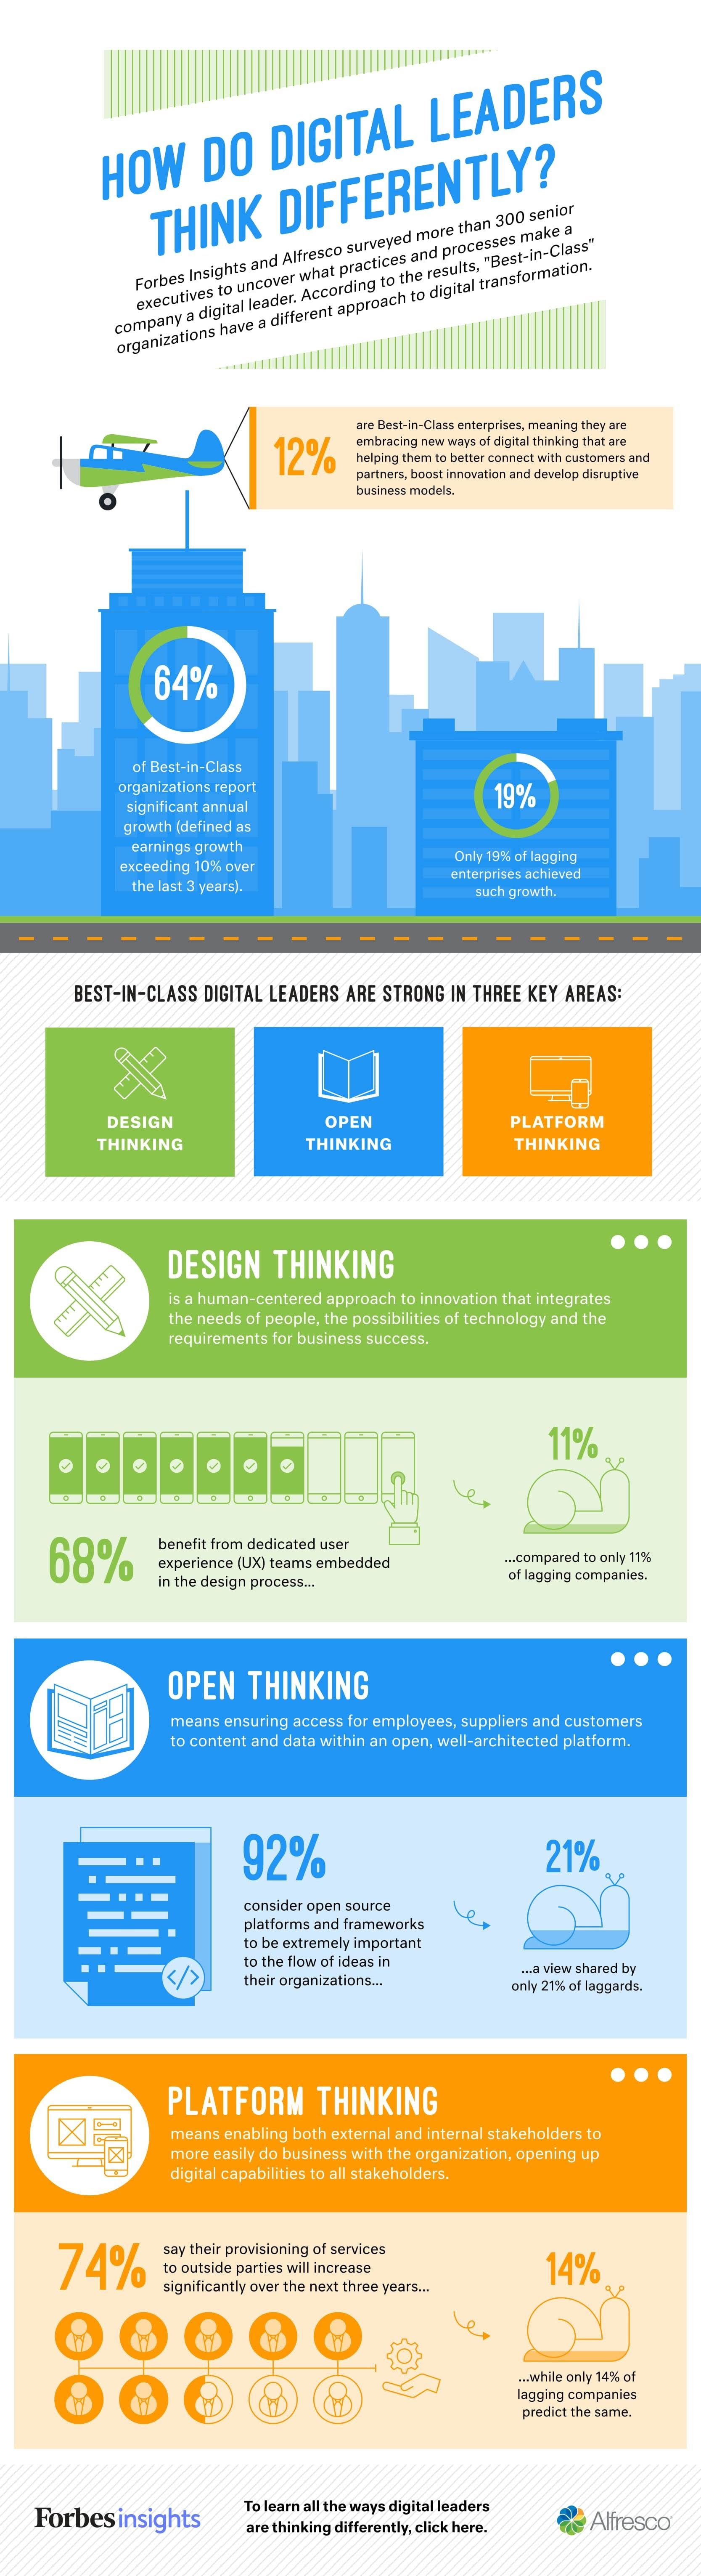 Why Successful Digital Leaders Think Differently – Infographic